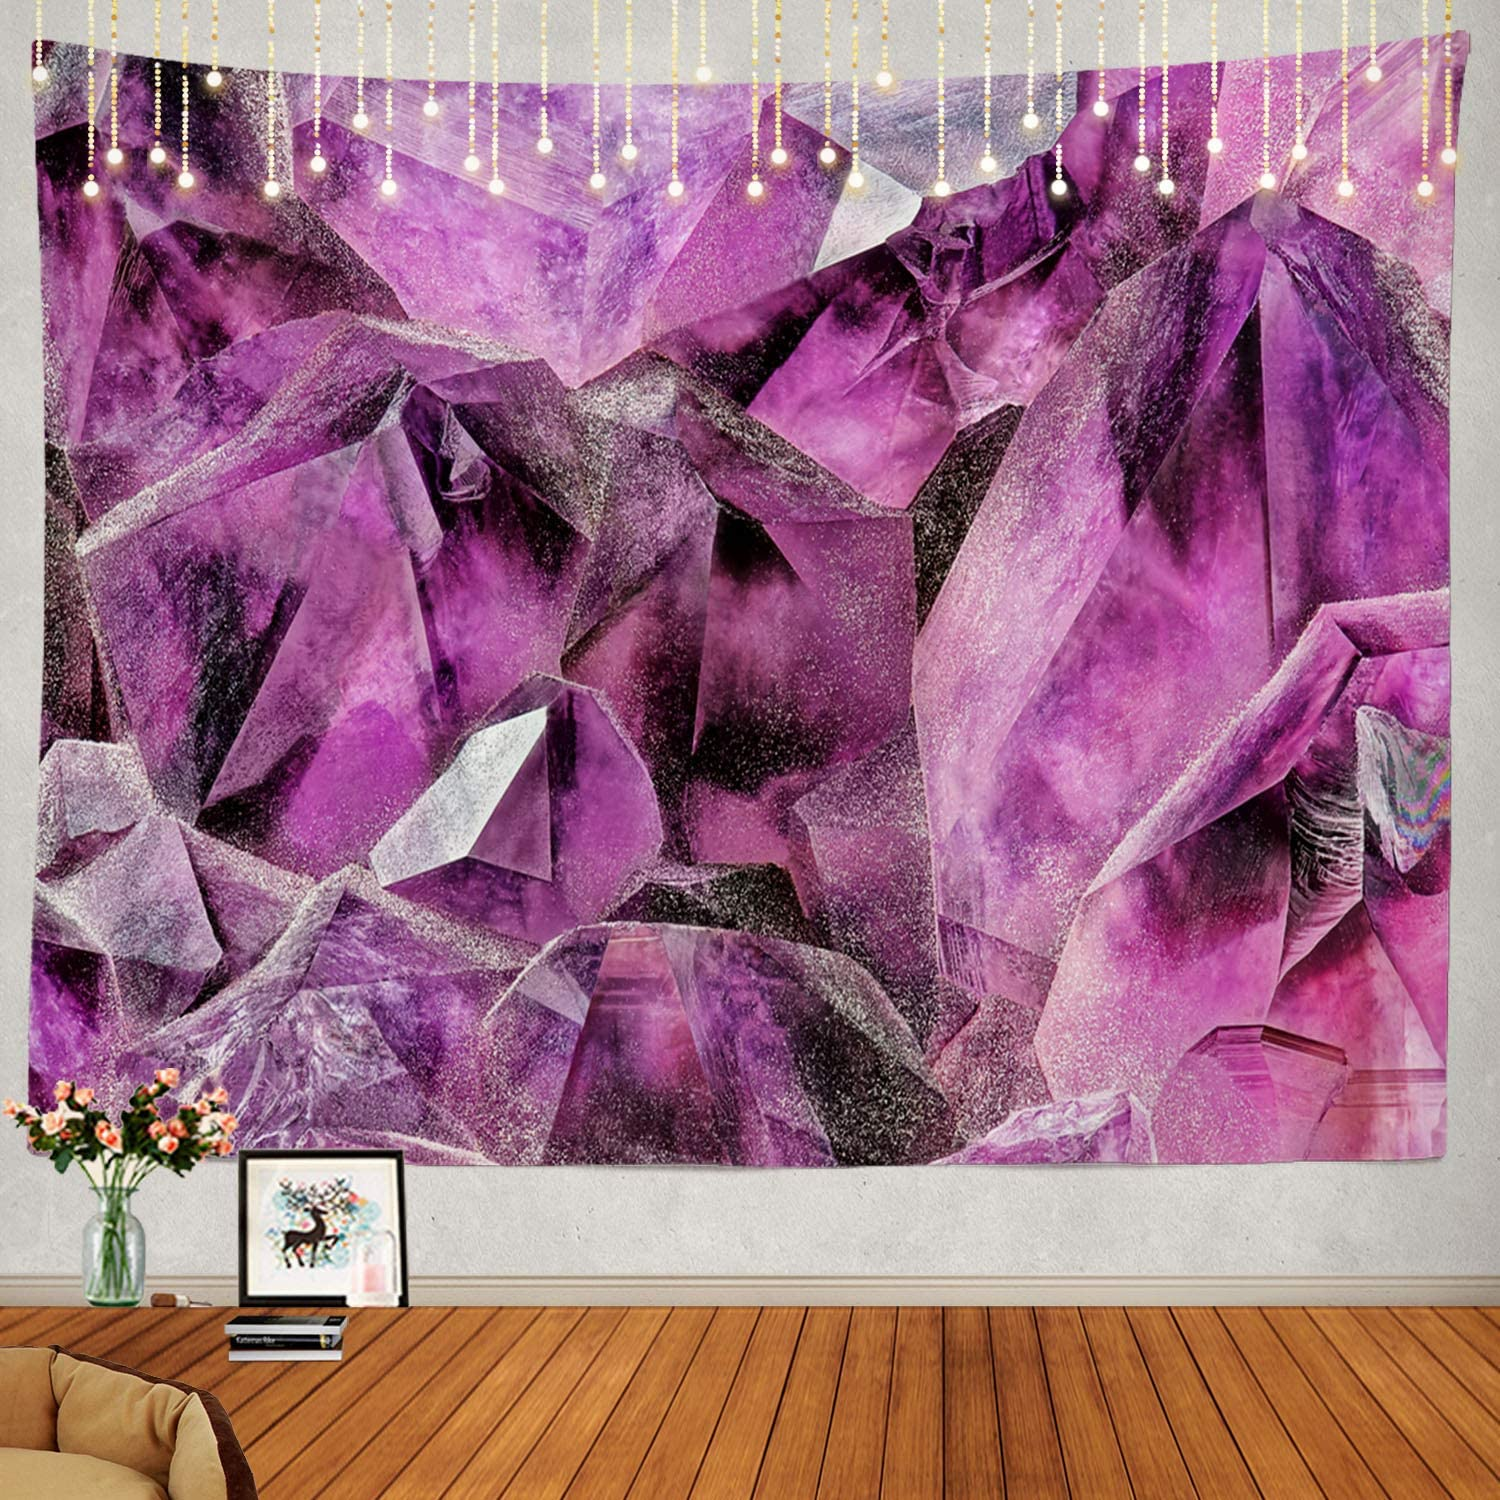 Shrahala Stone Wall Tapestry, Purple Crystal Amethyst Pink Gemstone Stone Gem Nature Wall Hanging Large Tapestry Psychedelic Tapestry Decorations Bedroom Living Room Dorm(51.2 x 59.1 Inches, Purple)